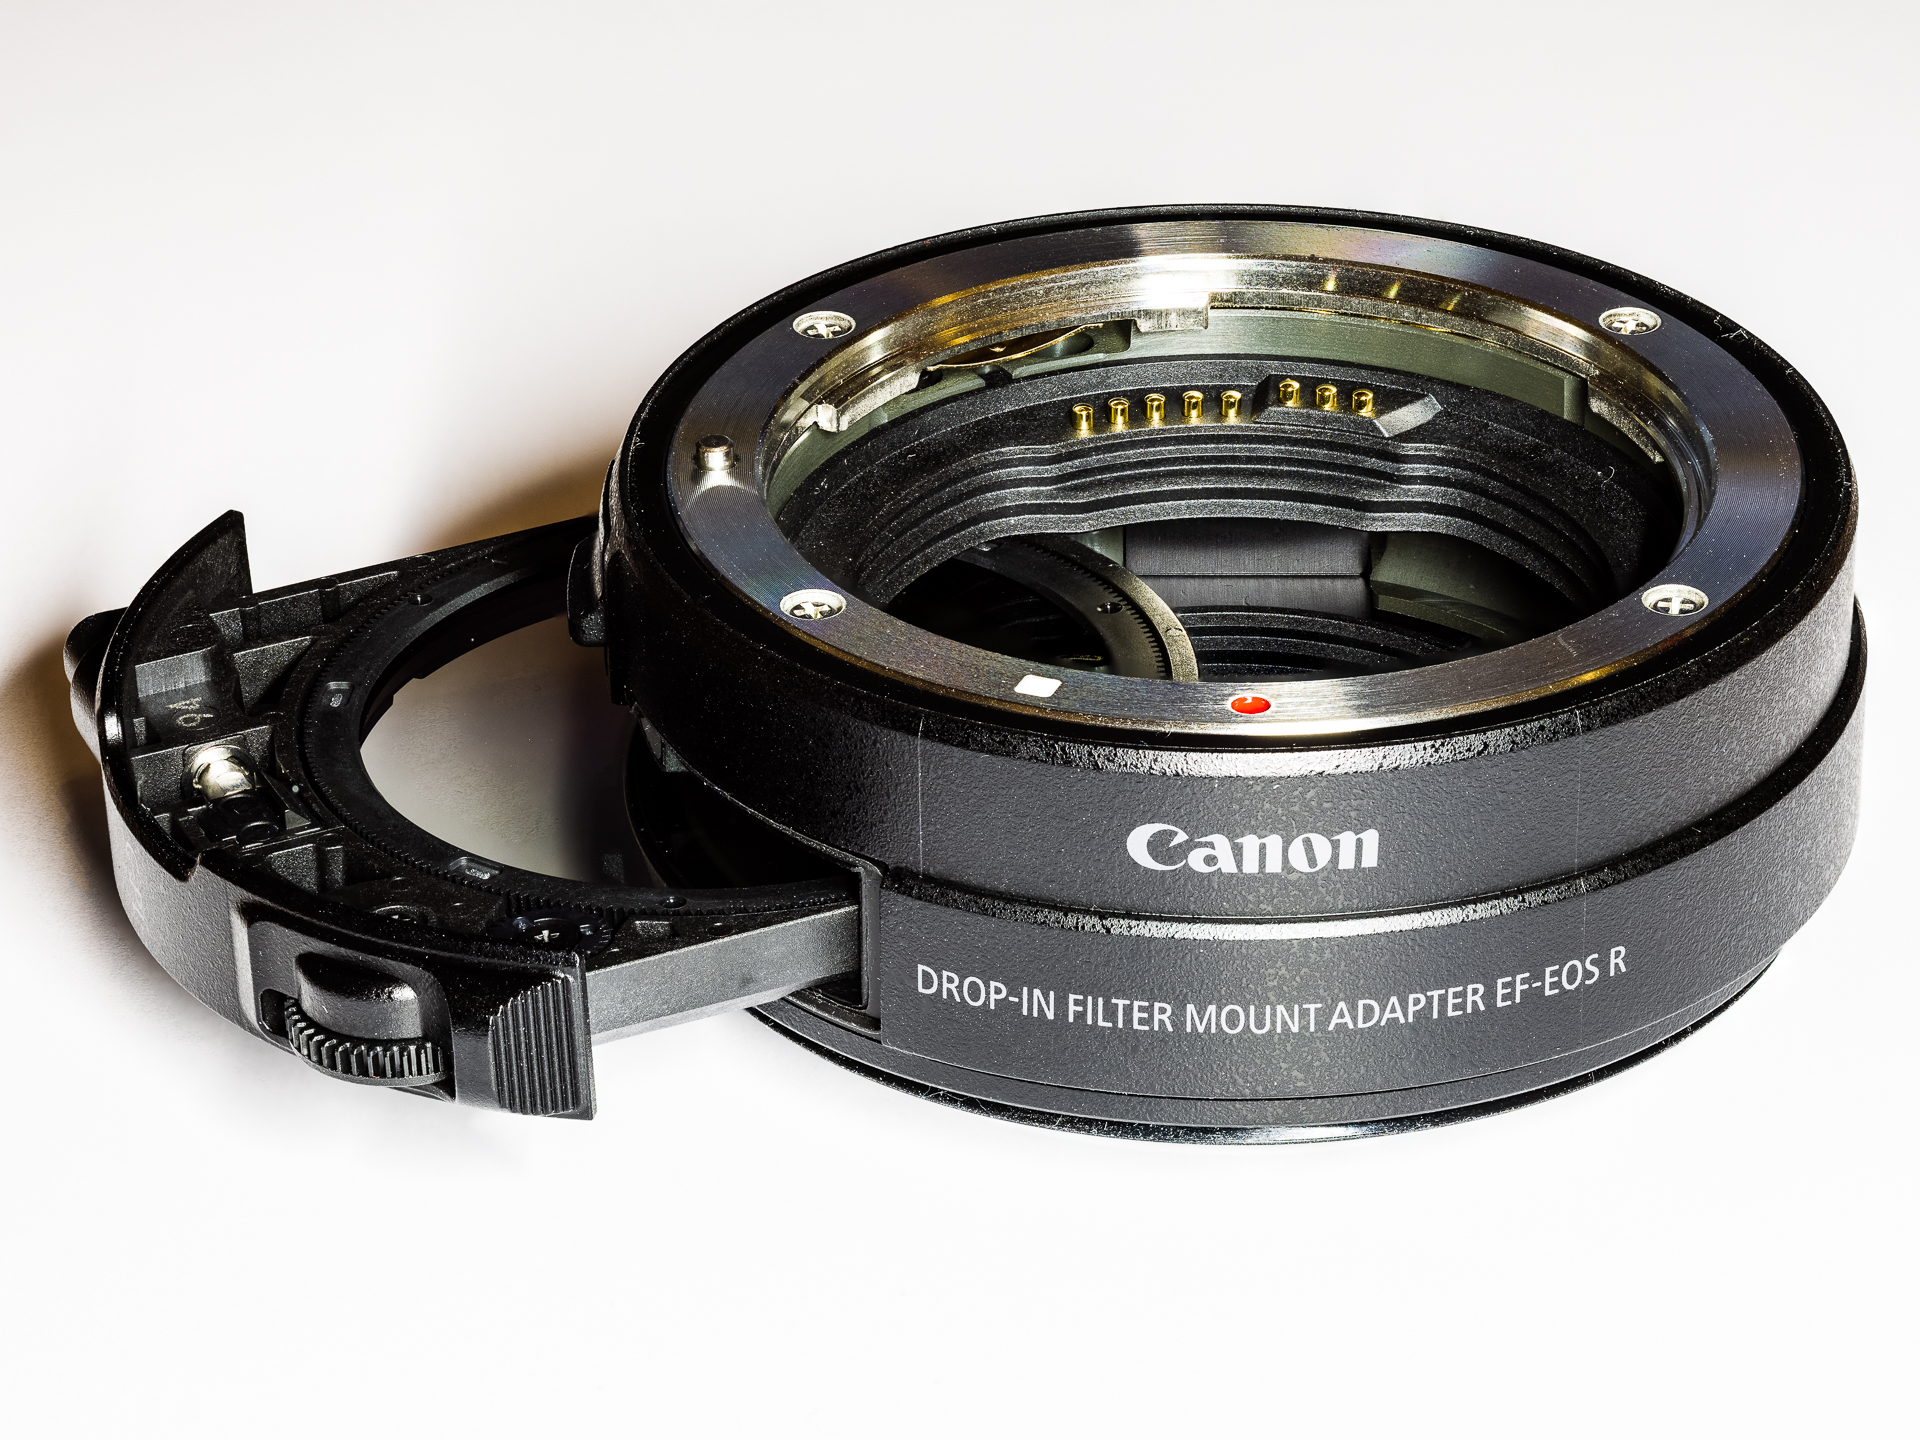 Drop-In Filter Mount Adapter EF-EOS R with C-PL Polfilter